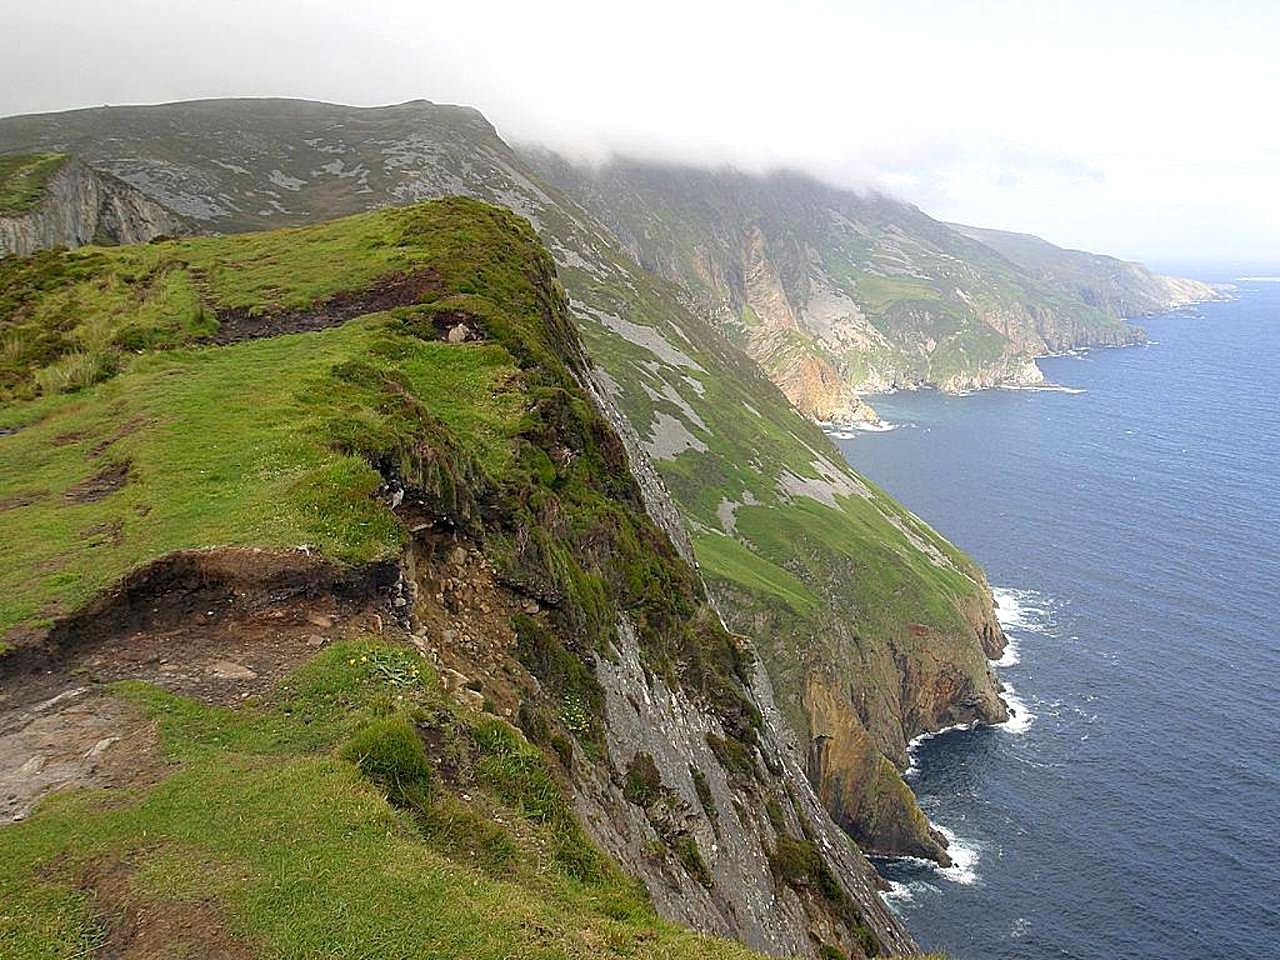 File:Cliffs ocean slieve league.jpg - Wikimedia Commons: https://commons.wikimedia.org/wiki/File:Cliffs_ocean_slieve_league.jpg